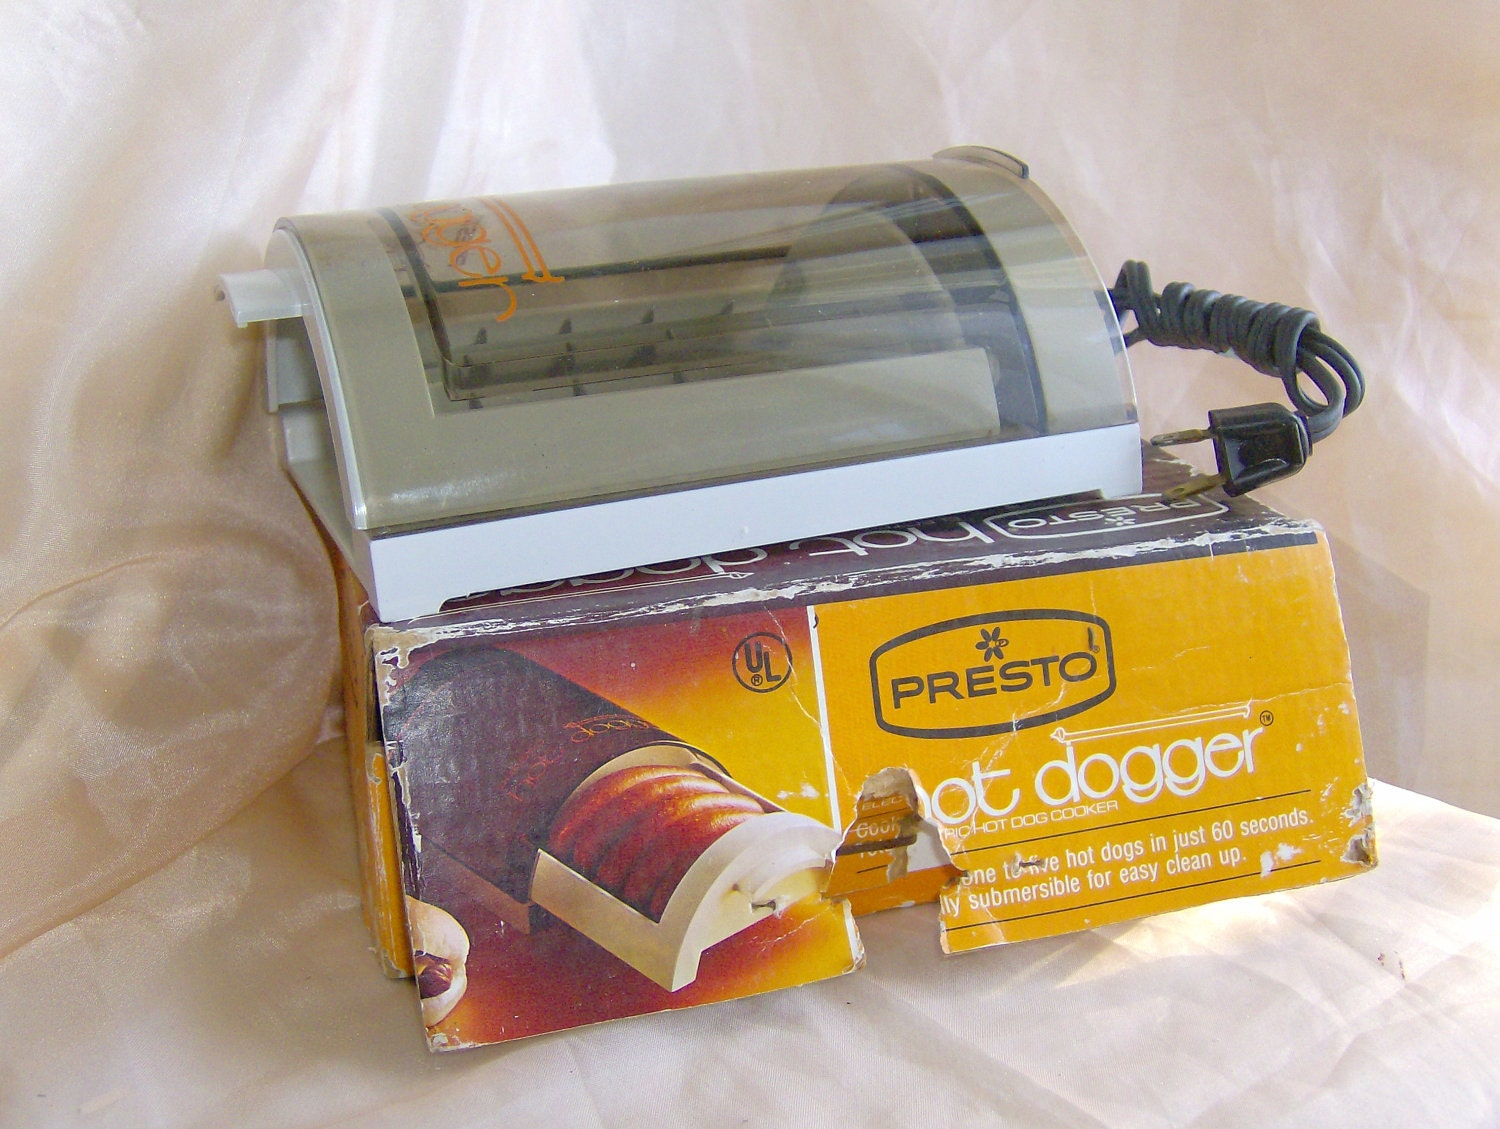 1970s Presto Hot Dogger Eletric Hot Dog Cooker